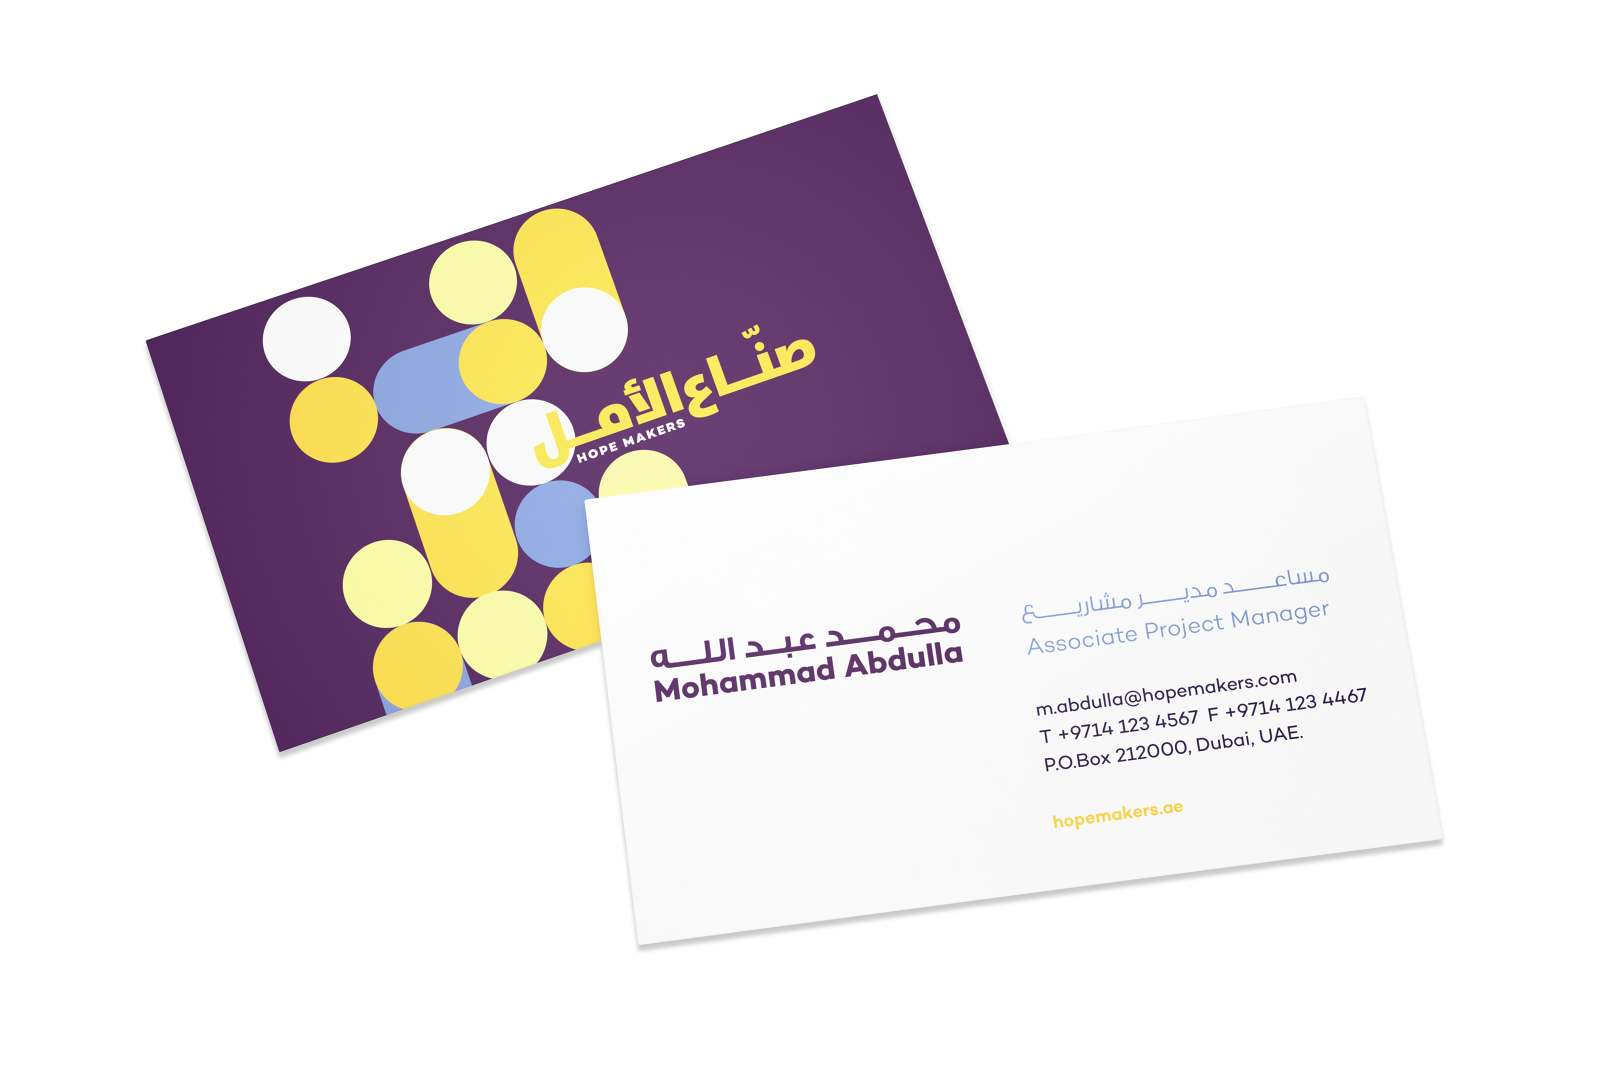 Arab hope makers xische co brand strategy identity arab hope makers xische co brand strategy identity marketing communications dubai new york reheart Images